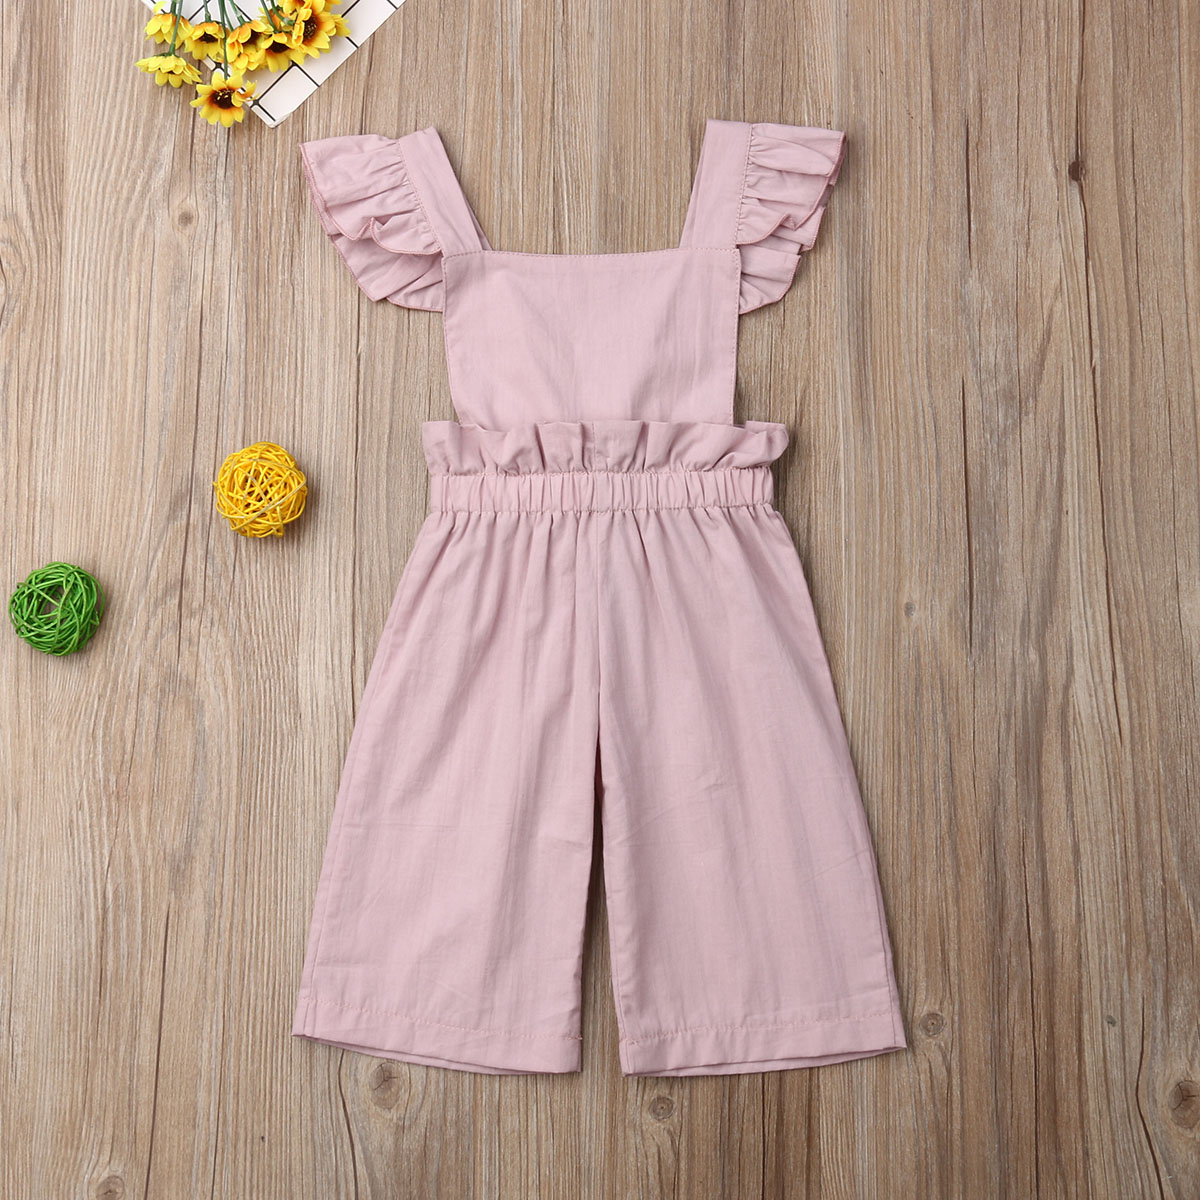 Pudcoco Newborn Baby Girl Clothes Solid Color Sleeveless Ruffle Romper Jumpsuit One-Piece Outfit Cotton Clothes Playsuit